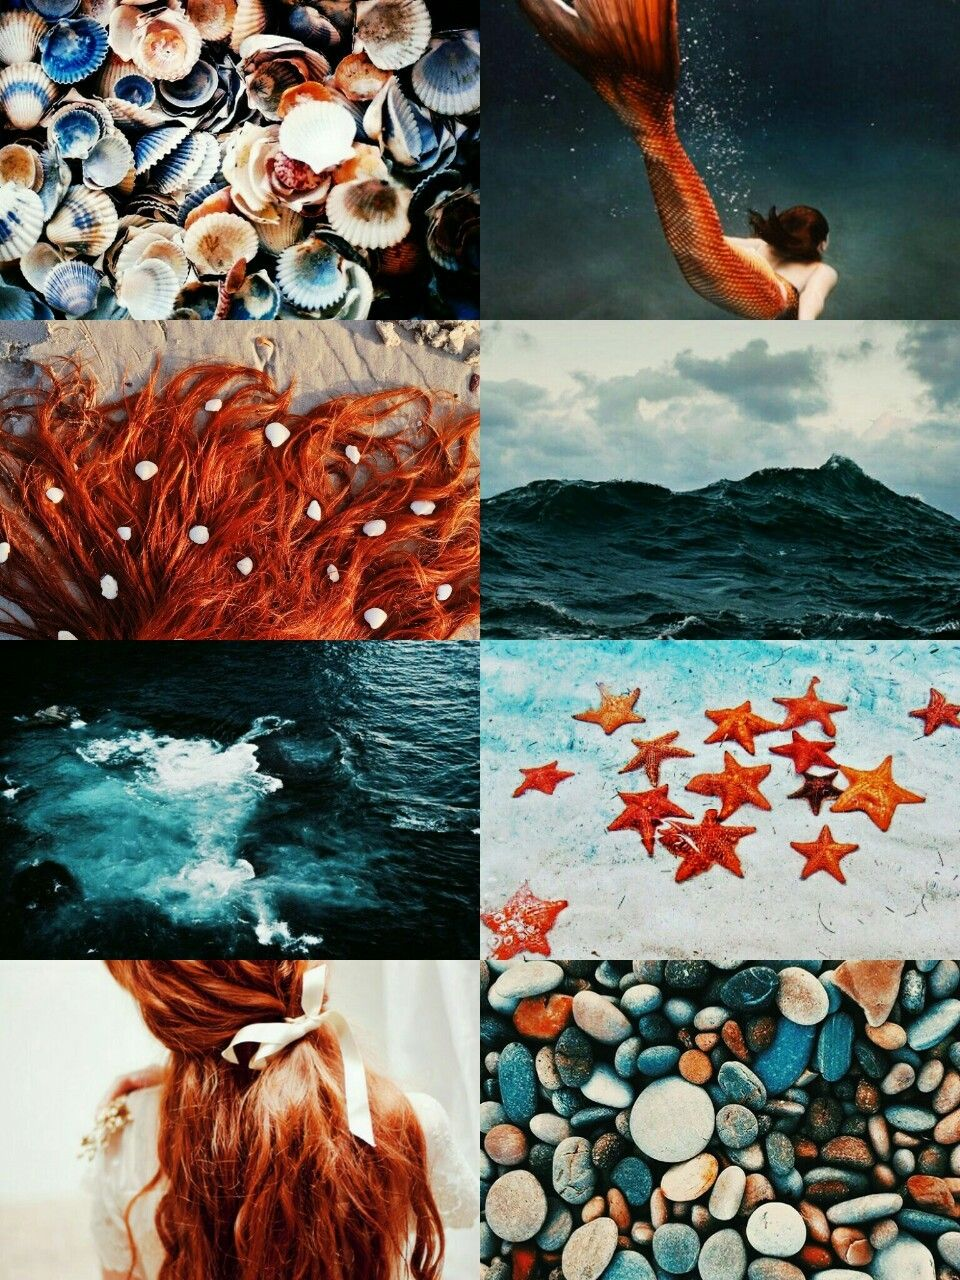 Ocean Girl Aesthetic With Images Syreny Kolaz